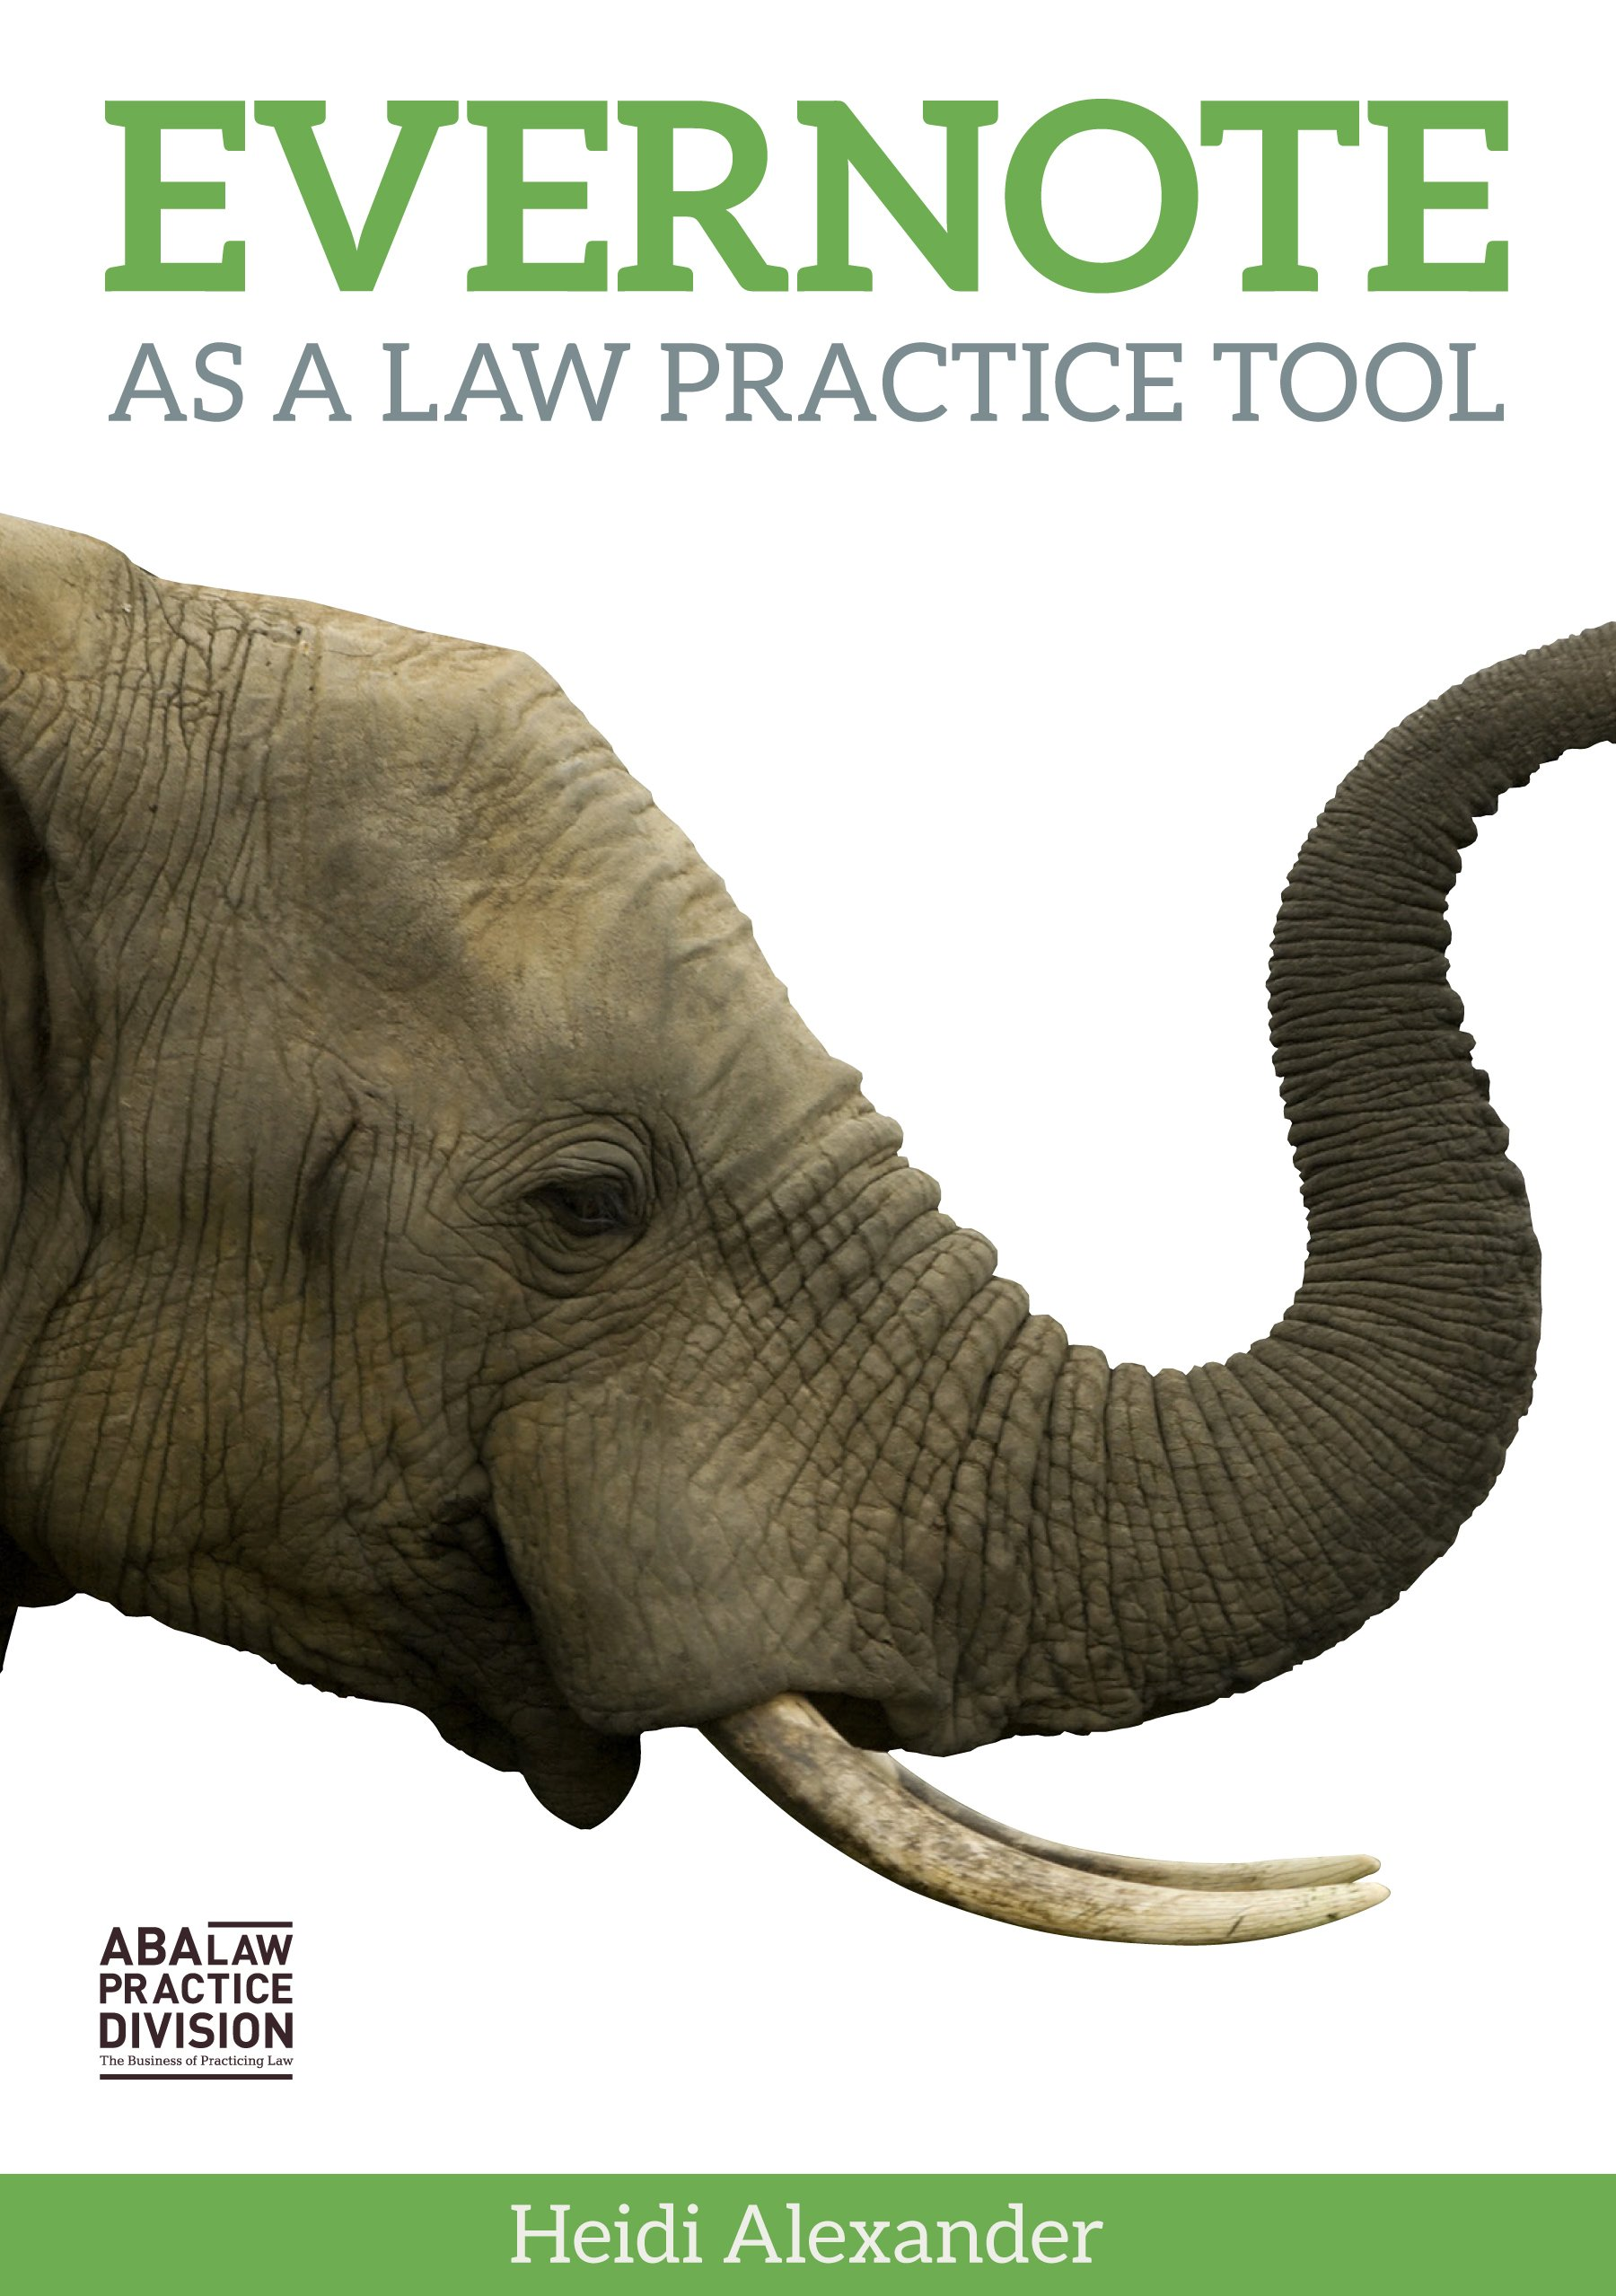 Image OfEvernote As A Law Practice Tool